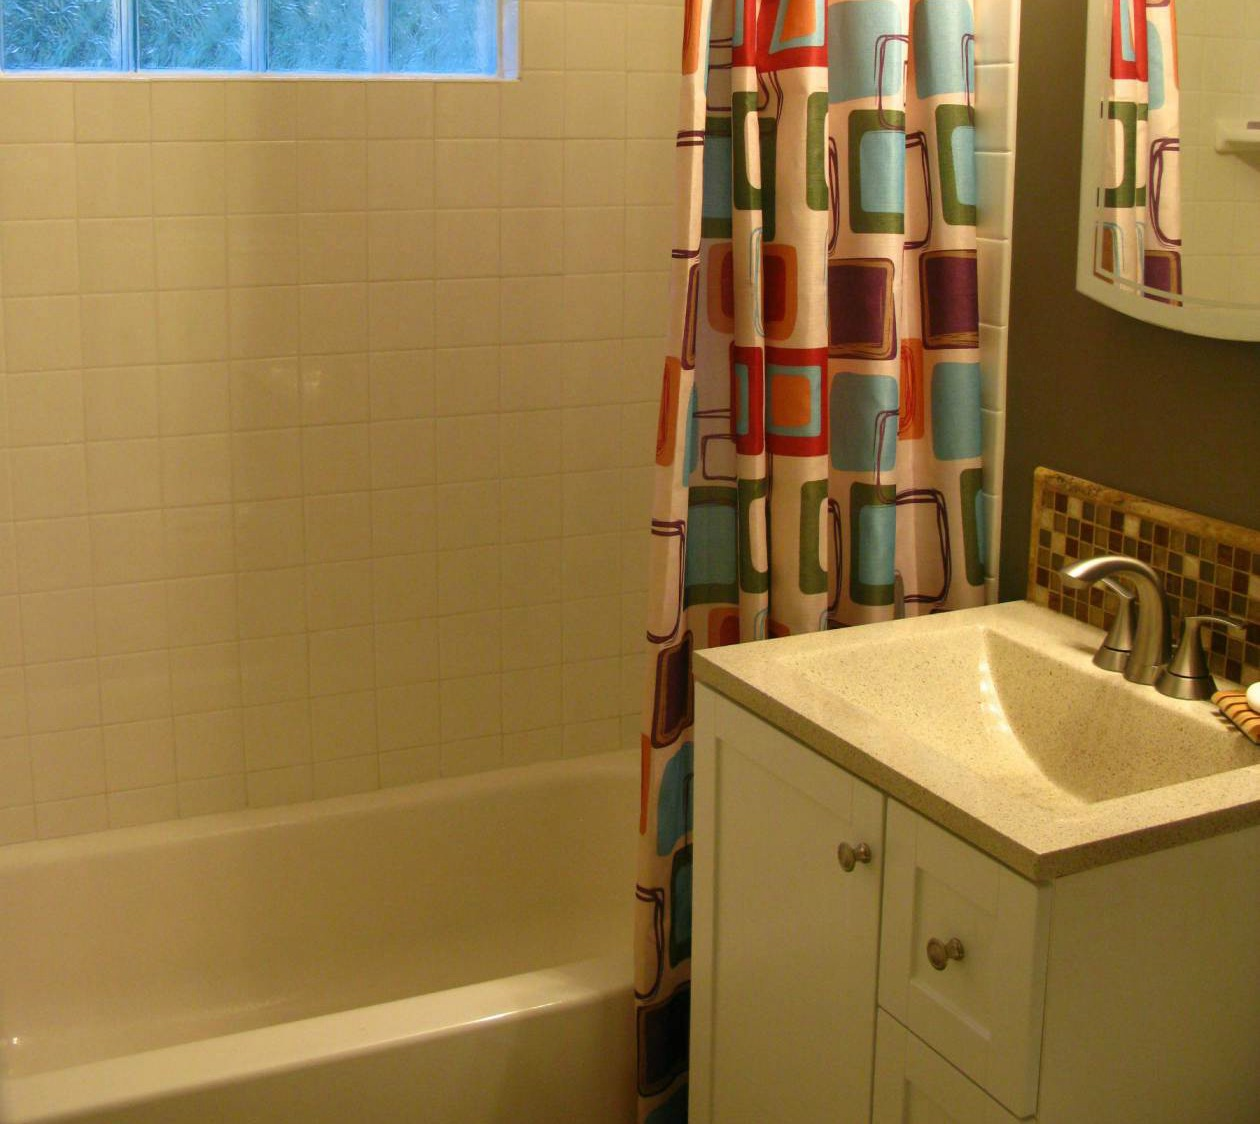 Bathroom Remodel Where To Start bathroom remodel: from start to finish